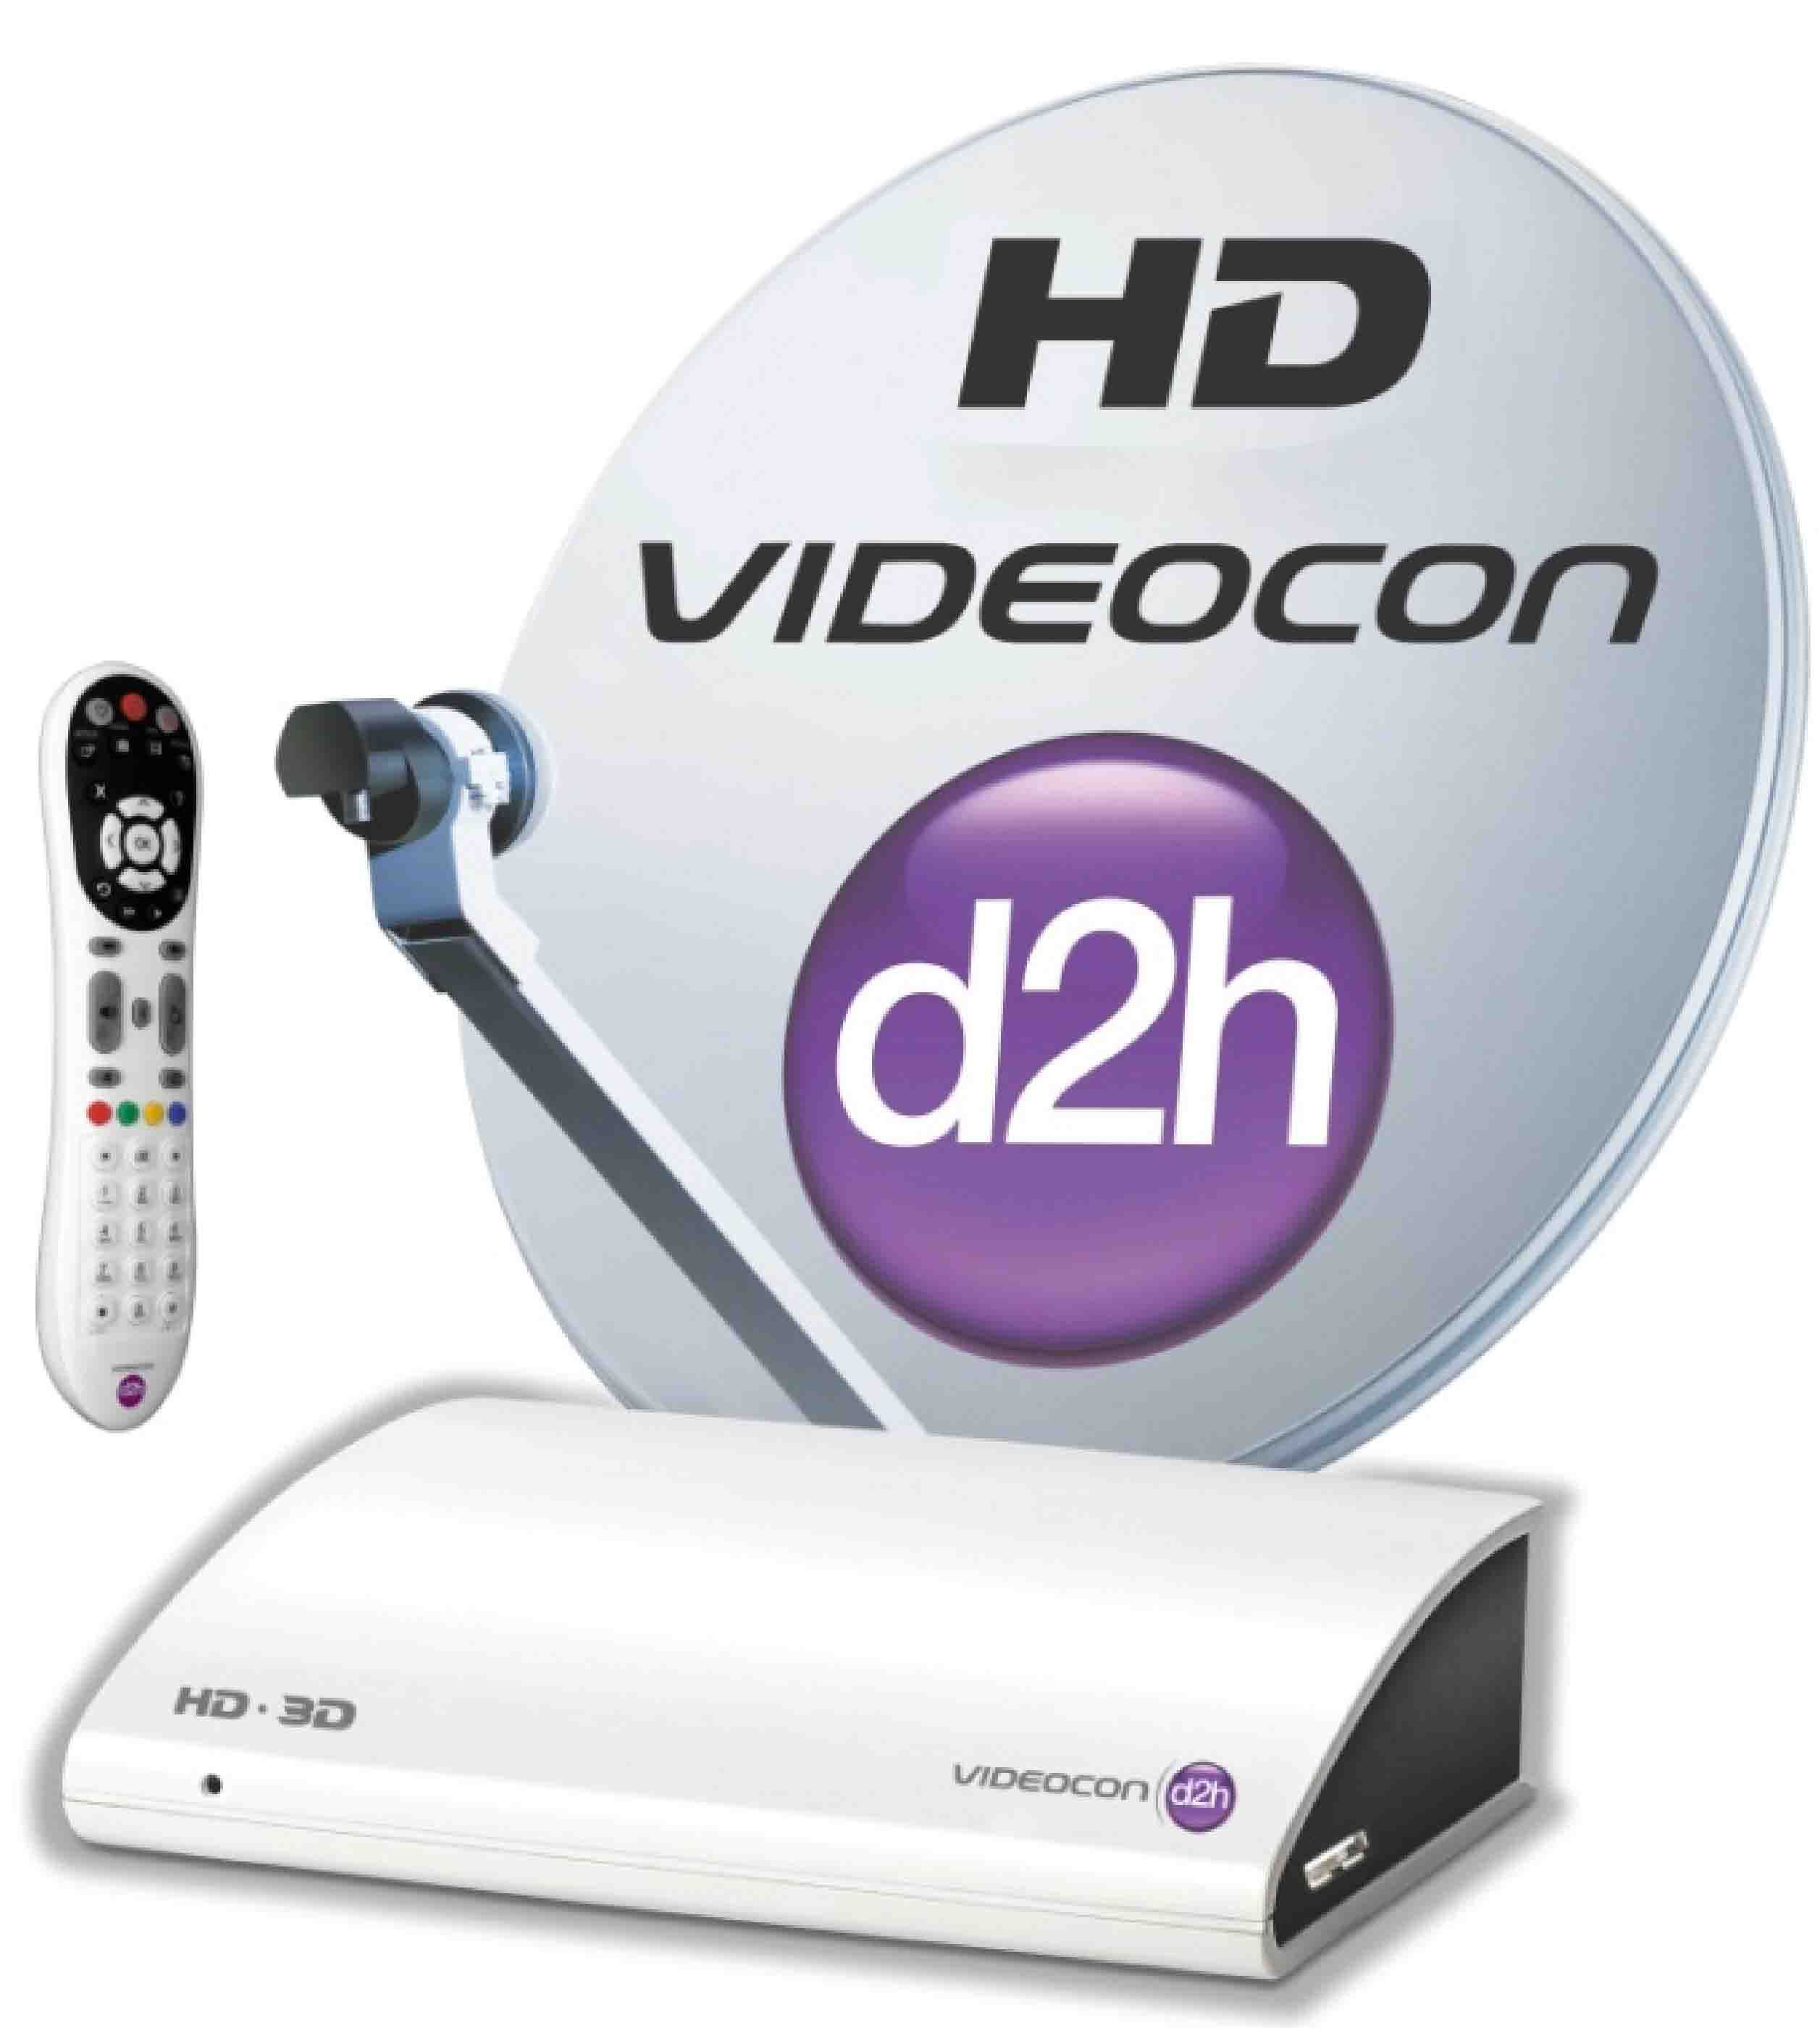 Videocon d2h recharge Postpaid online recharge is easy to